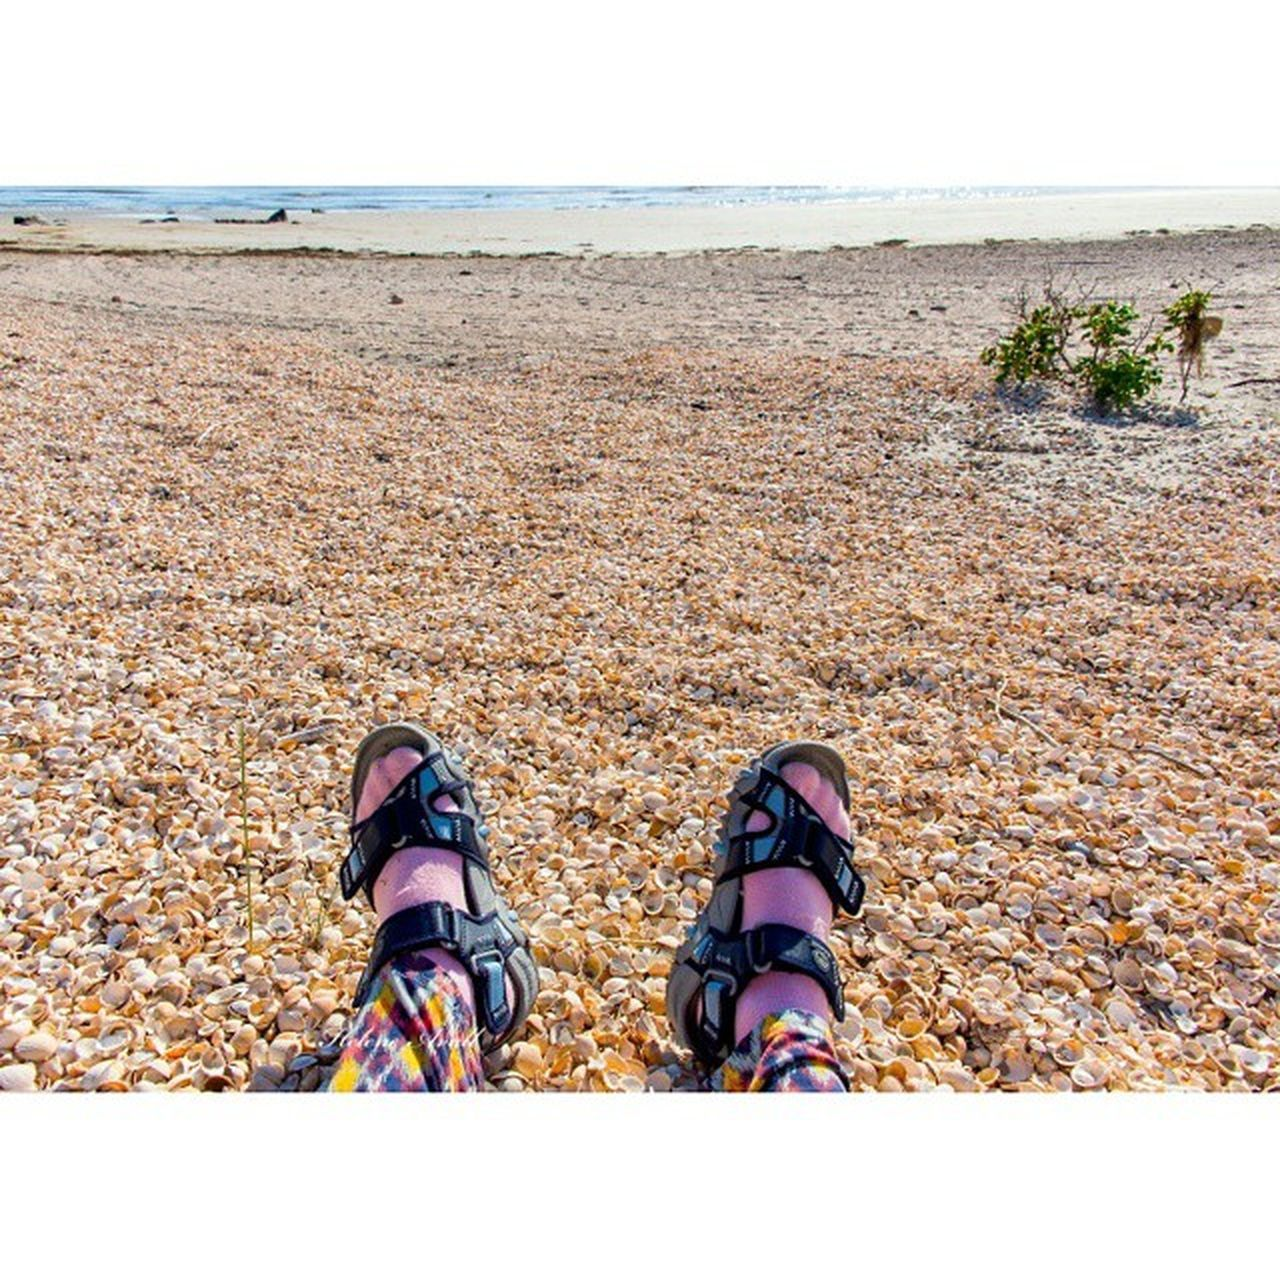 Beach Shells ShellBeach Timberland Timberlandboots Summertime Sunnydays SummerinSweden Sunshineaddicted Photooftheday Vacaciones Vacations Vacationtime Vacation2015 Semester Sommar Snäckor From My Point Of View Showcase: February Our Best Pics igdaily#igfame#swag#illest#supreme#stussy#snapback#chicago#bulls#dope#obey#thehundreds#tflers#followforfollowlikeforliketagfortagfollowmefollowmeasap [a:here Belongs To Me Landscape